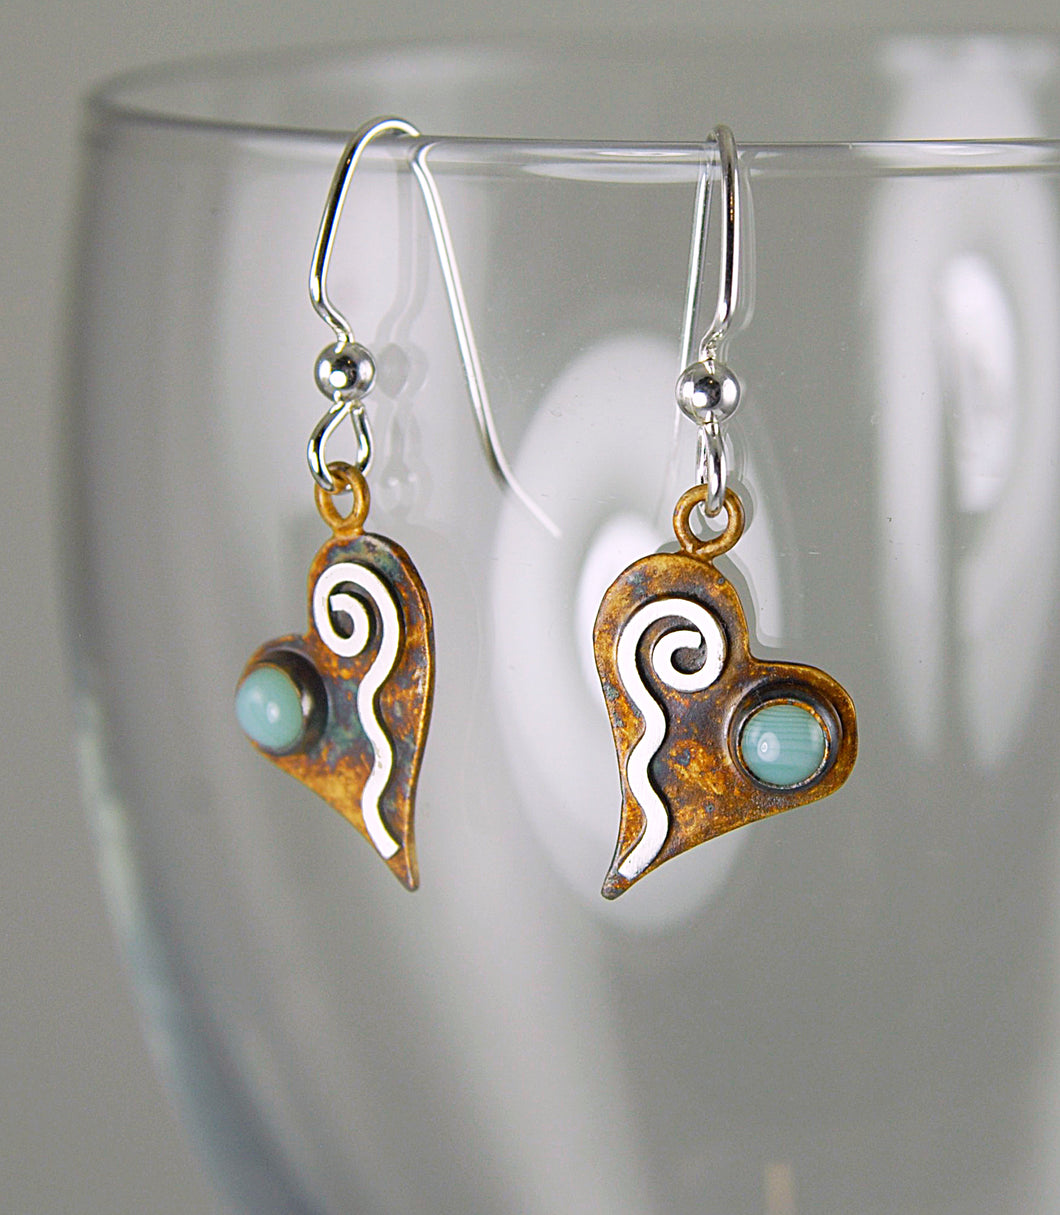 Patina Silver Tiny Heart Earrings with Pale Green Banded Agate and Sterling Silver Wavy Spiral, AE1, Lois Linn Jewelry